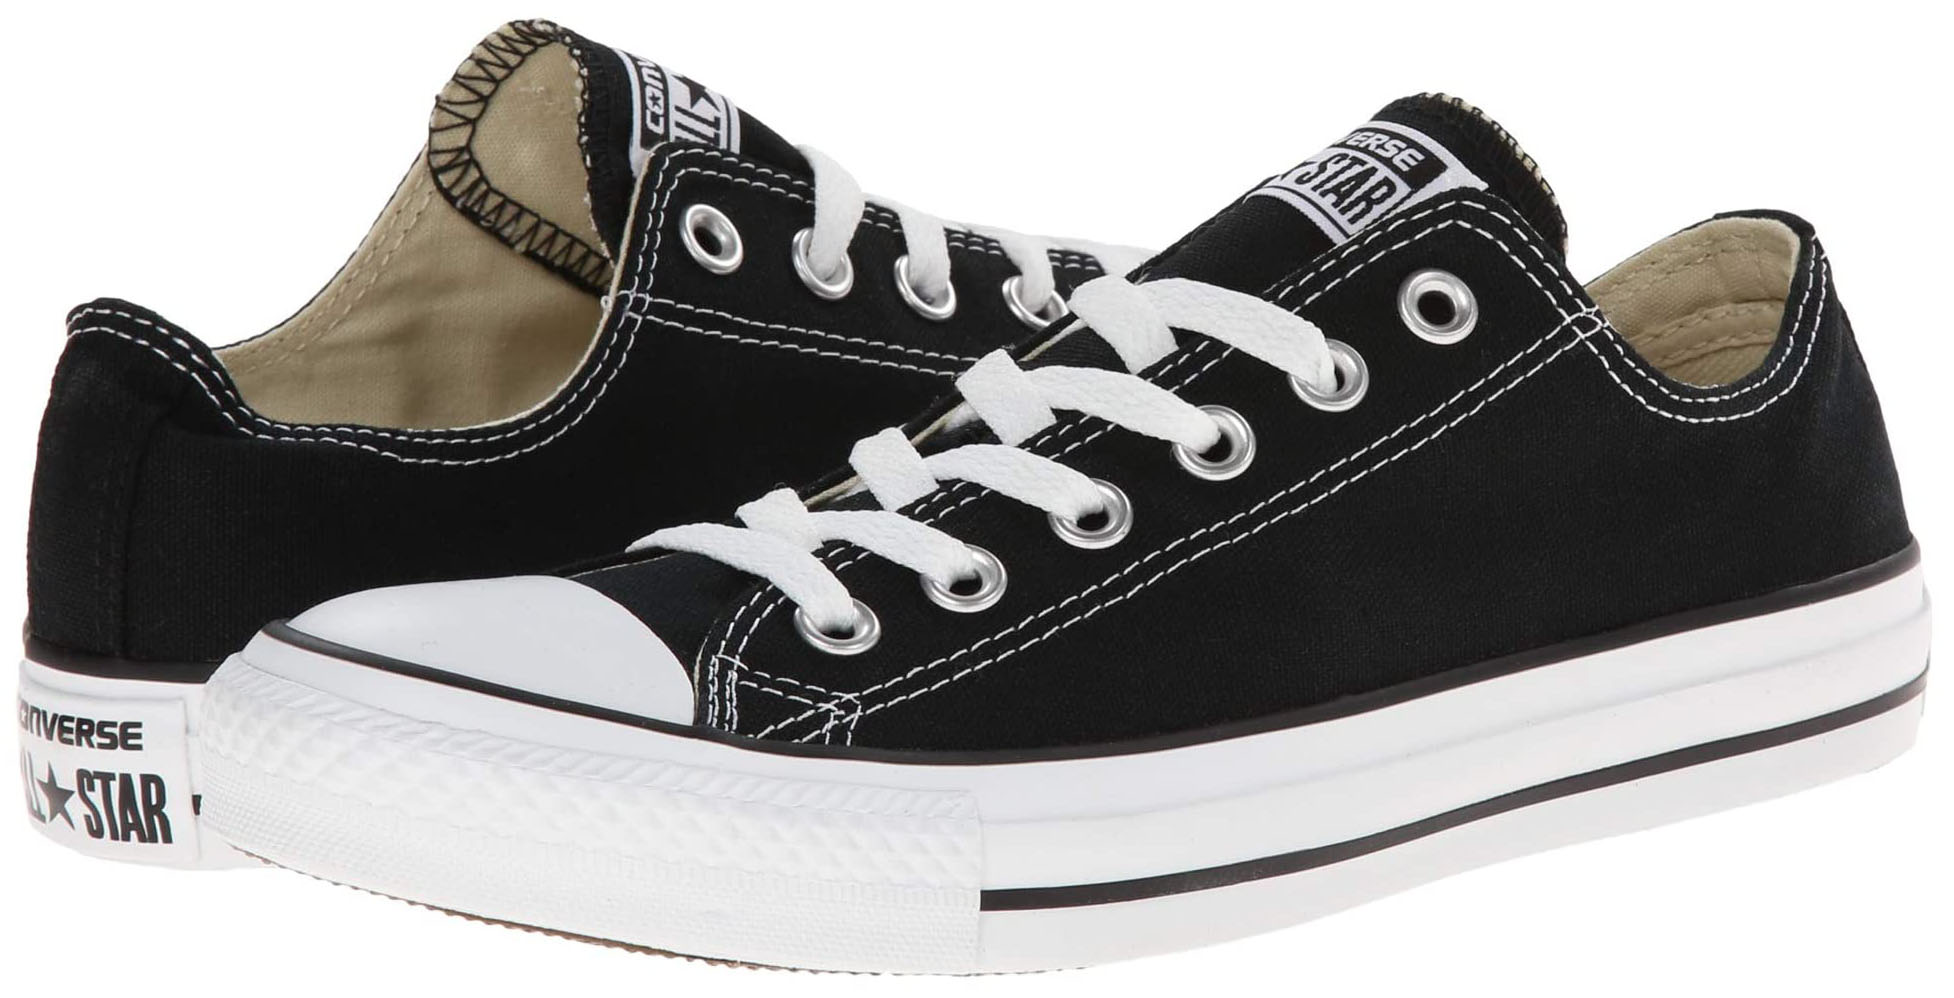 A classic-favorite casual shoe made from canvas with Converse's signature rubber outsole